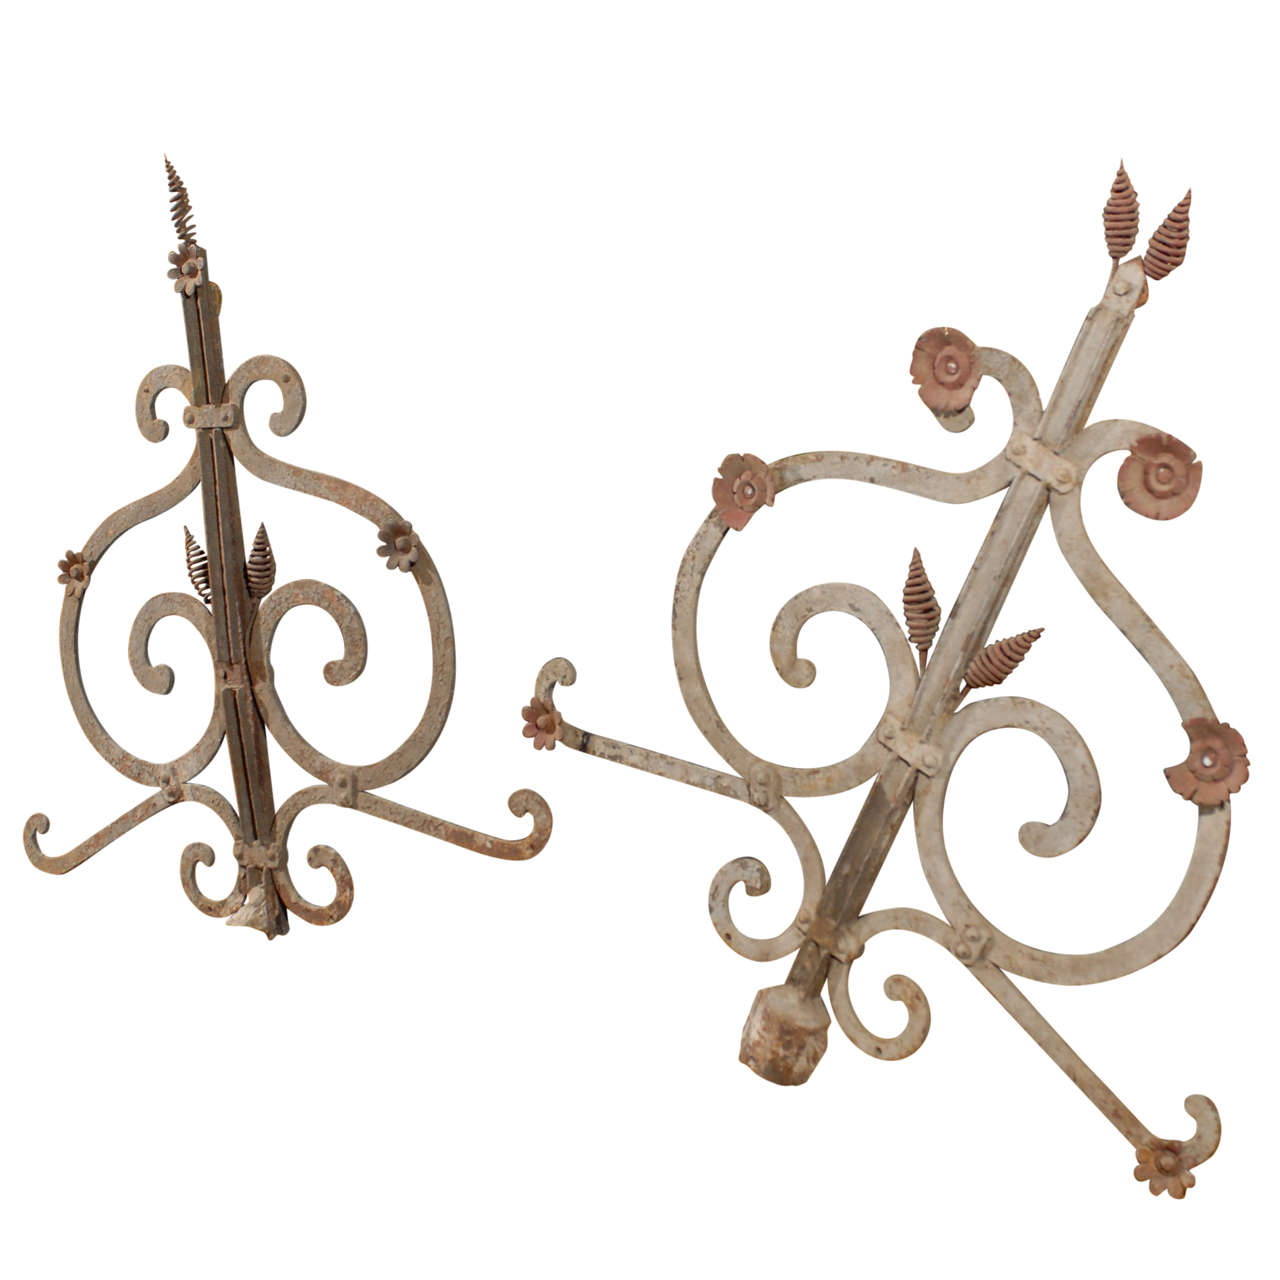 Pair of 19th Century French Painted Iron Garden Elements